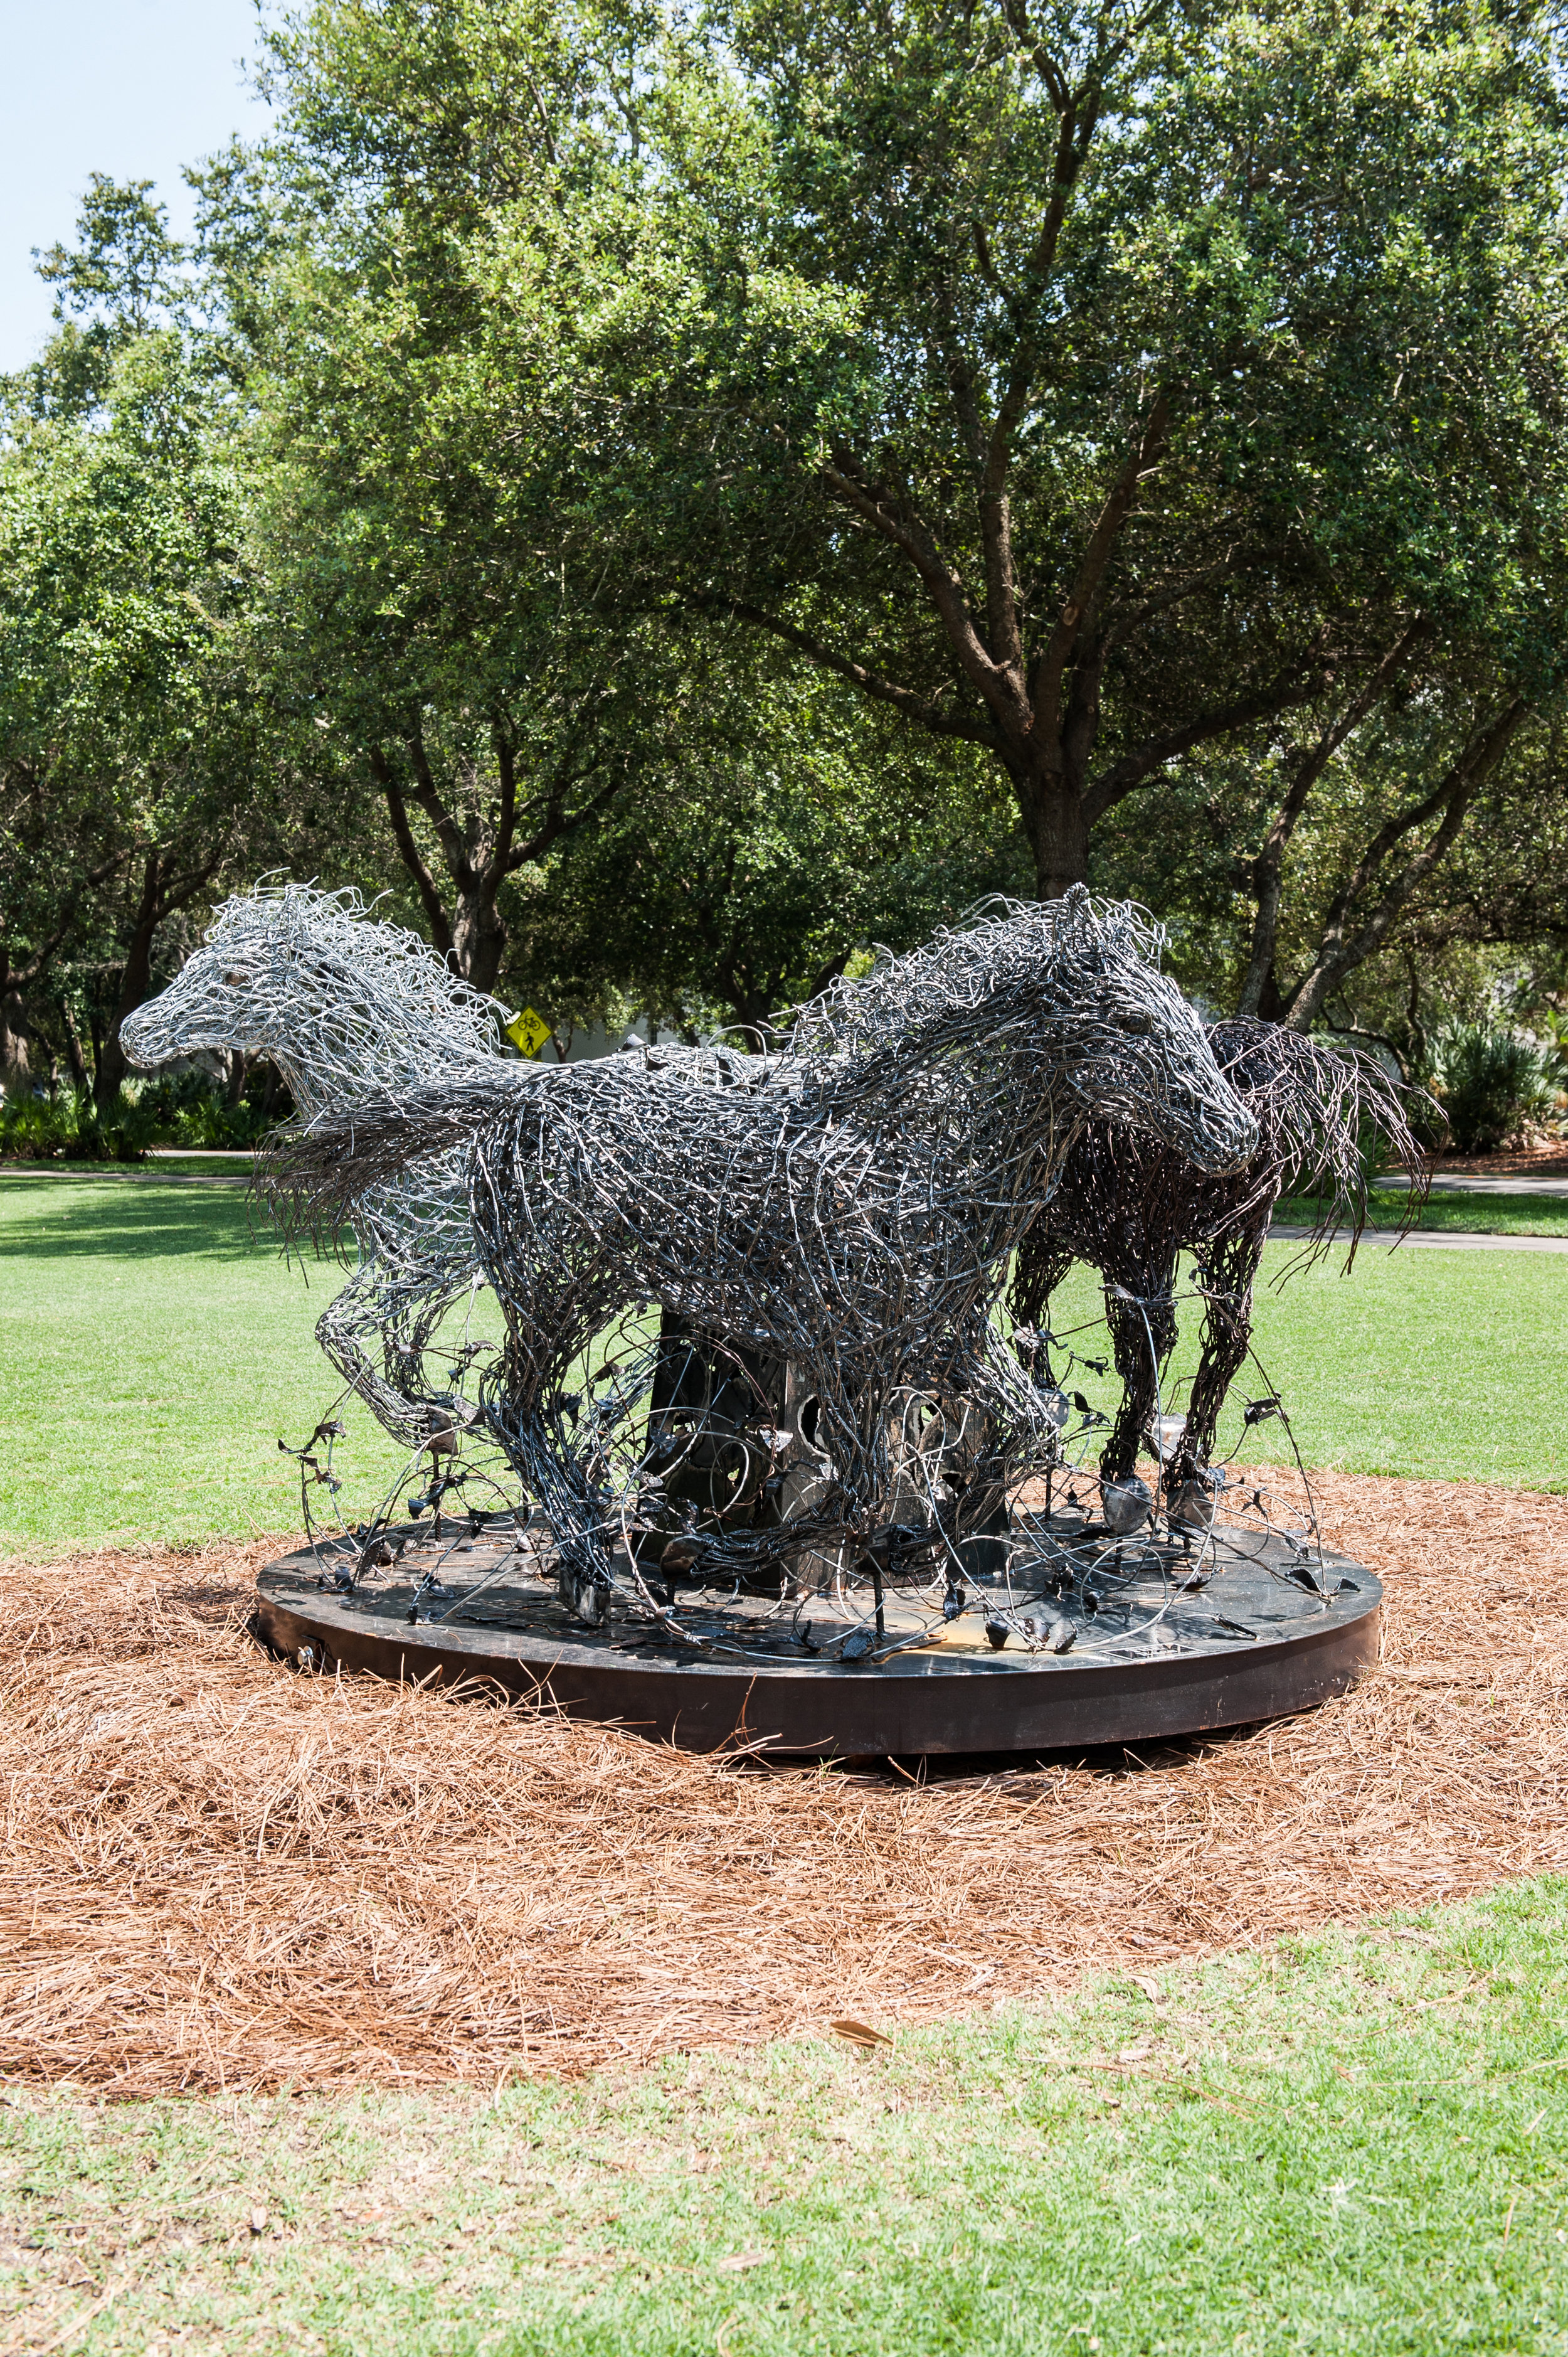 "- JEFF BESTb. 1961Clare, MichiganThe Race, 2018-19Wire6' wide circle$12,000The race might be an obvious title for running horses. All constructed by the same creator, using the same materials, in the same pose, all headed towards a common goal of success with one obvious difference . . . color, or ""the race"". To see color, three things must be present: LIGHT, OBJECT and OBSERVER. In a Race, we'll observe three things: COURAGE, SPEED, AND ENDURANCE. So, let's all embrace The Race regardless an obvious difference."